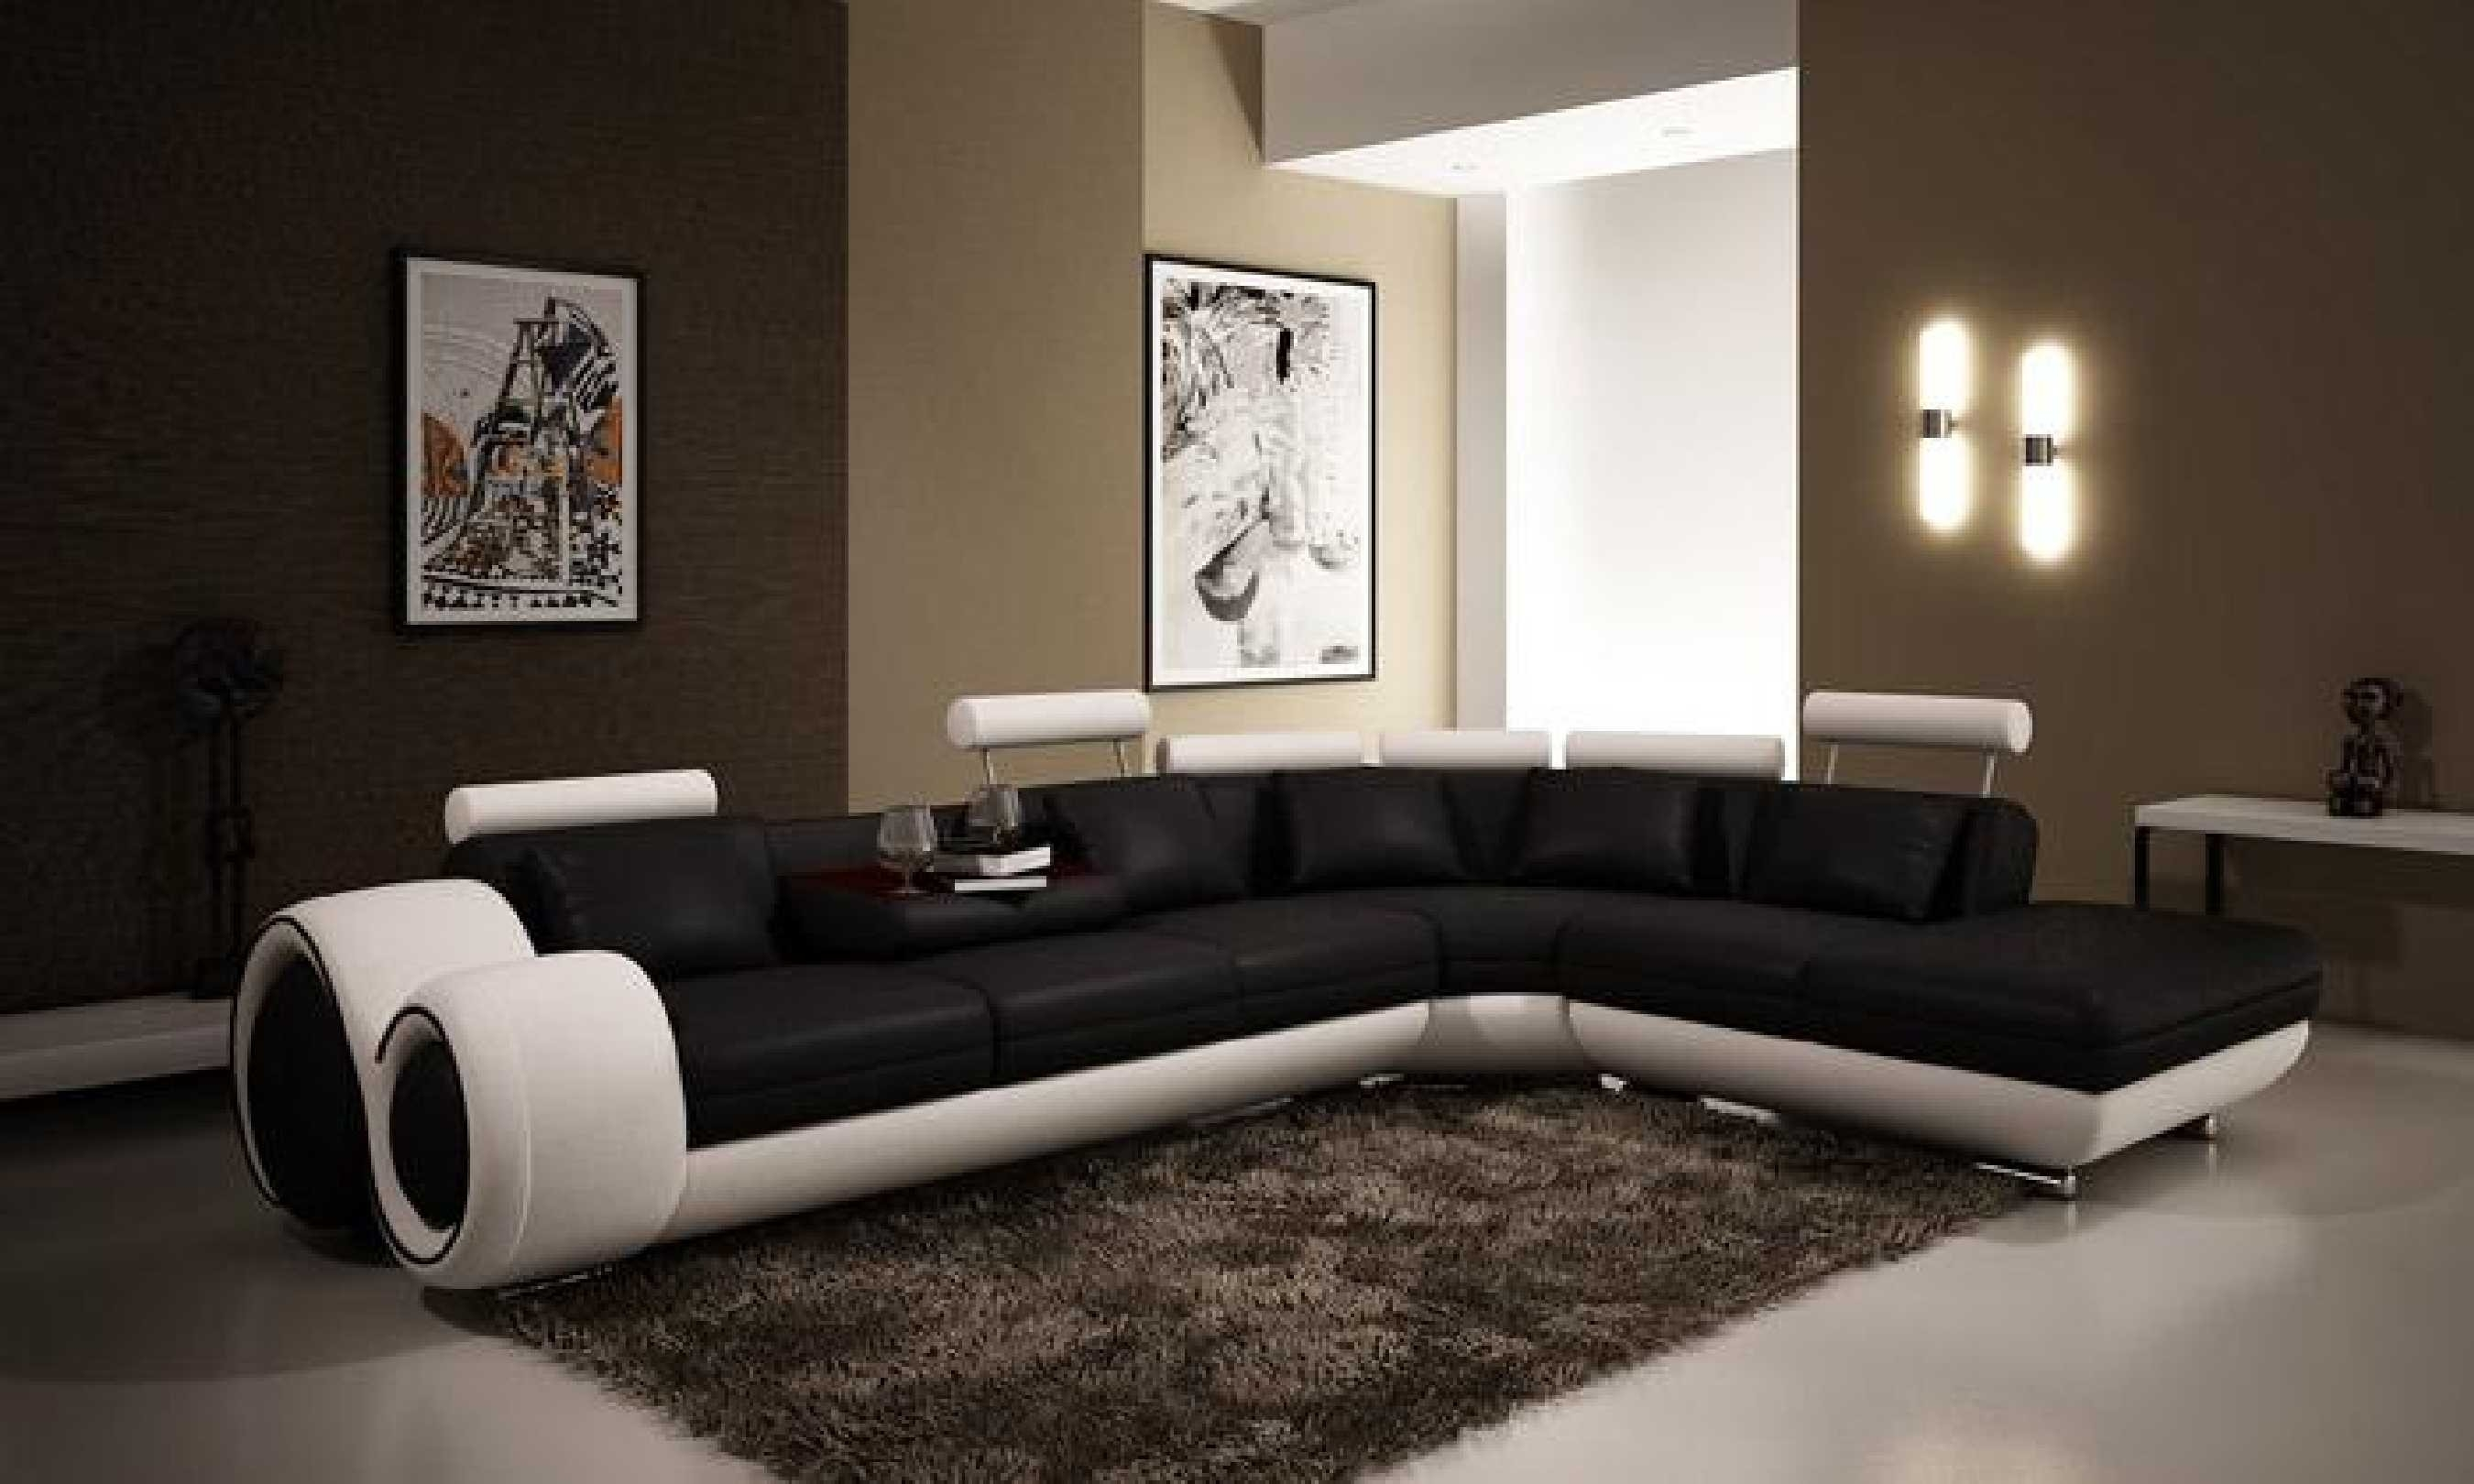 Furniture Black And White Sectional Using Black And White Inside Black And White Sectional Sofa (#9 of 12)